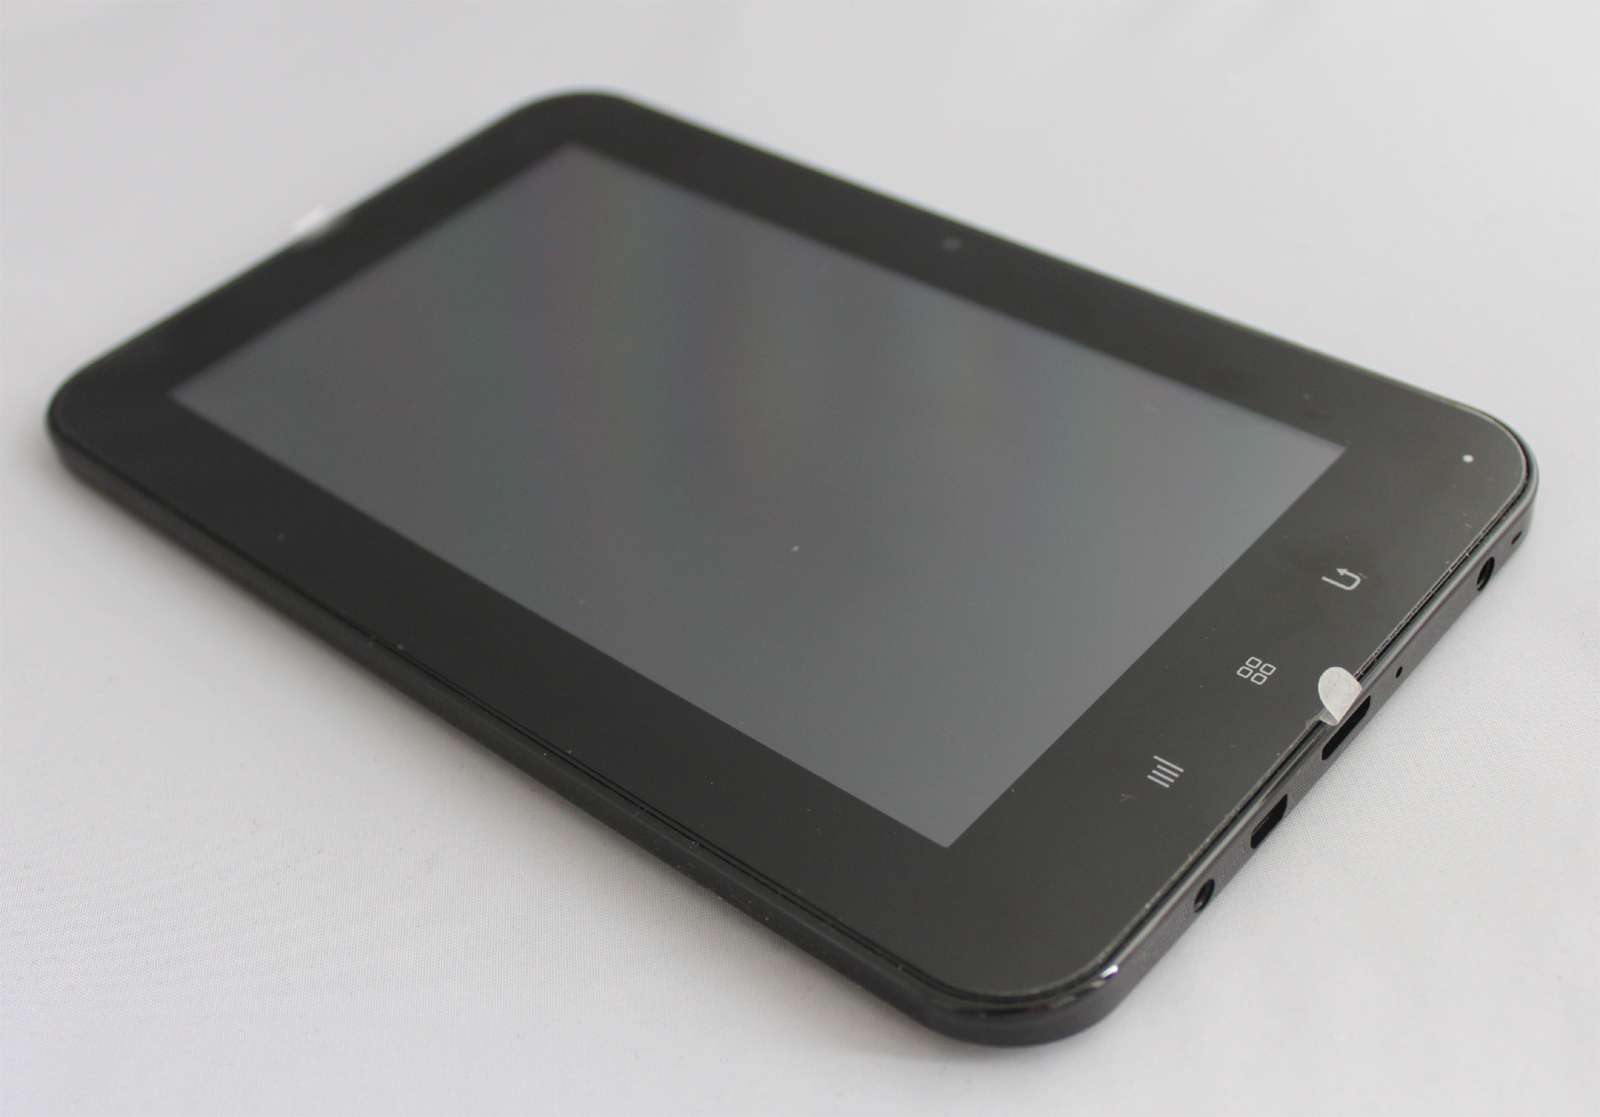 "7"" Super Slim Capacitive Tablet PC with 2MP Front Camera and Google Android 4.0 Operating System"